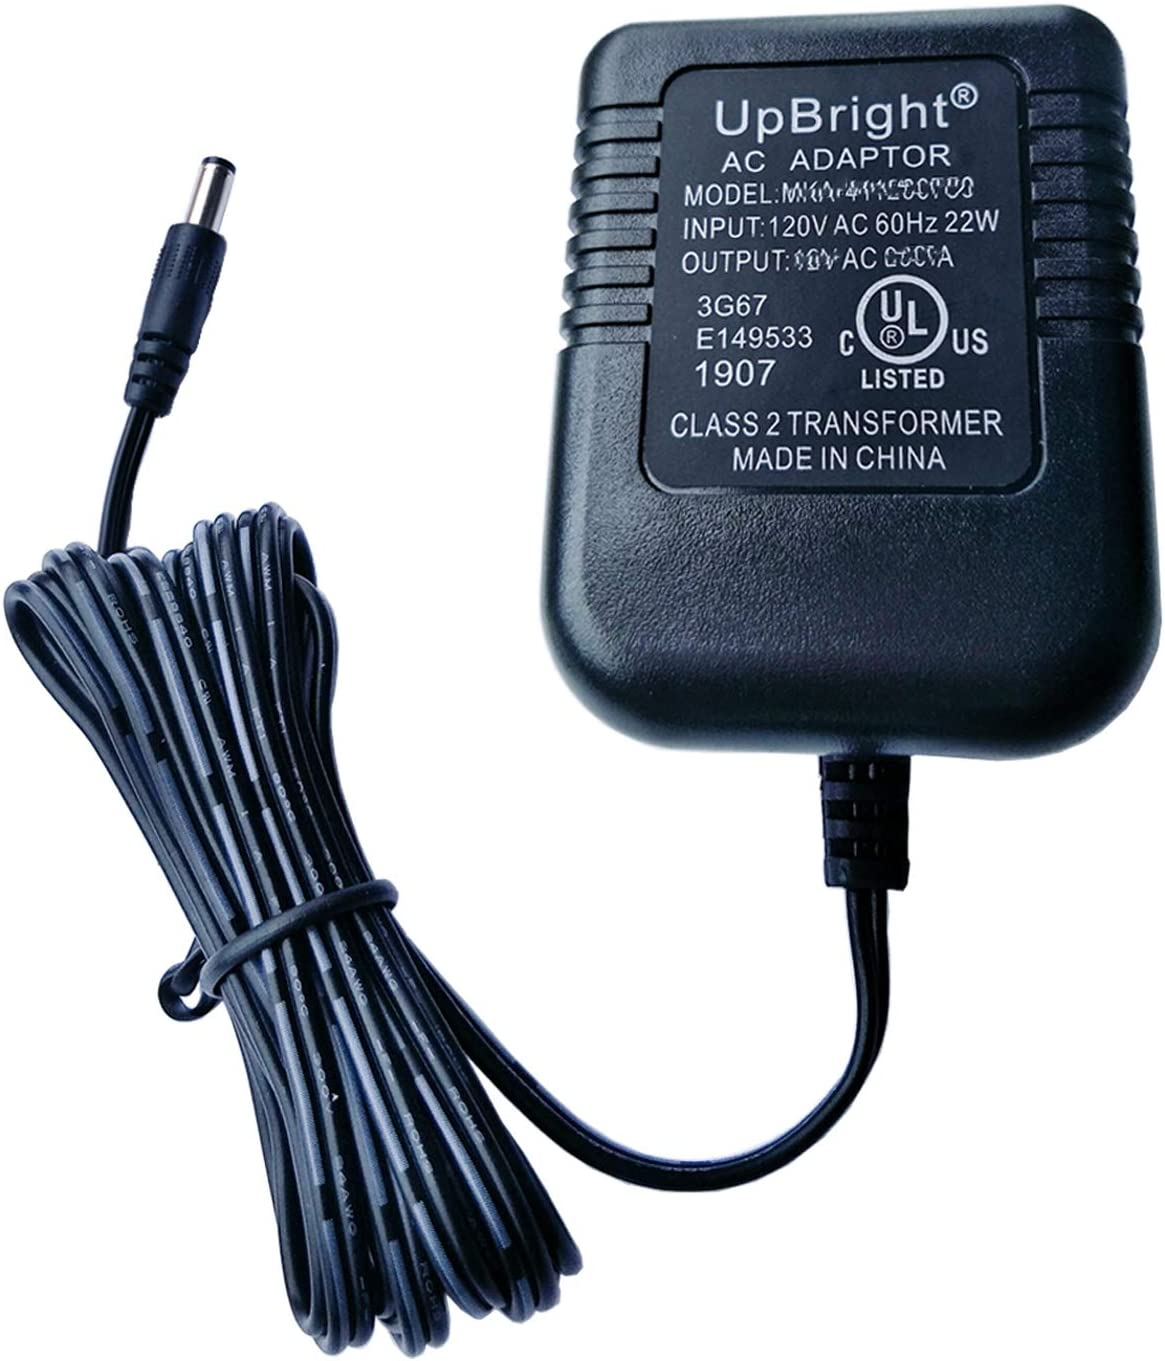 UpBright 12V AC Adapter Compatible with Coleman 5342 5348 Lamp Lantern A35W120400-13/1 W35A-J400-4/1 Mettler PB153 PB302 Lionel SA35-429A AC120100 ...